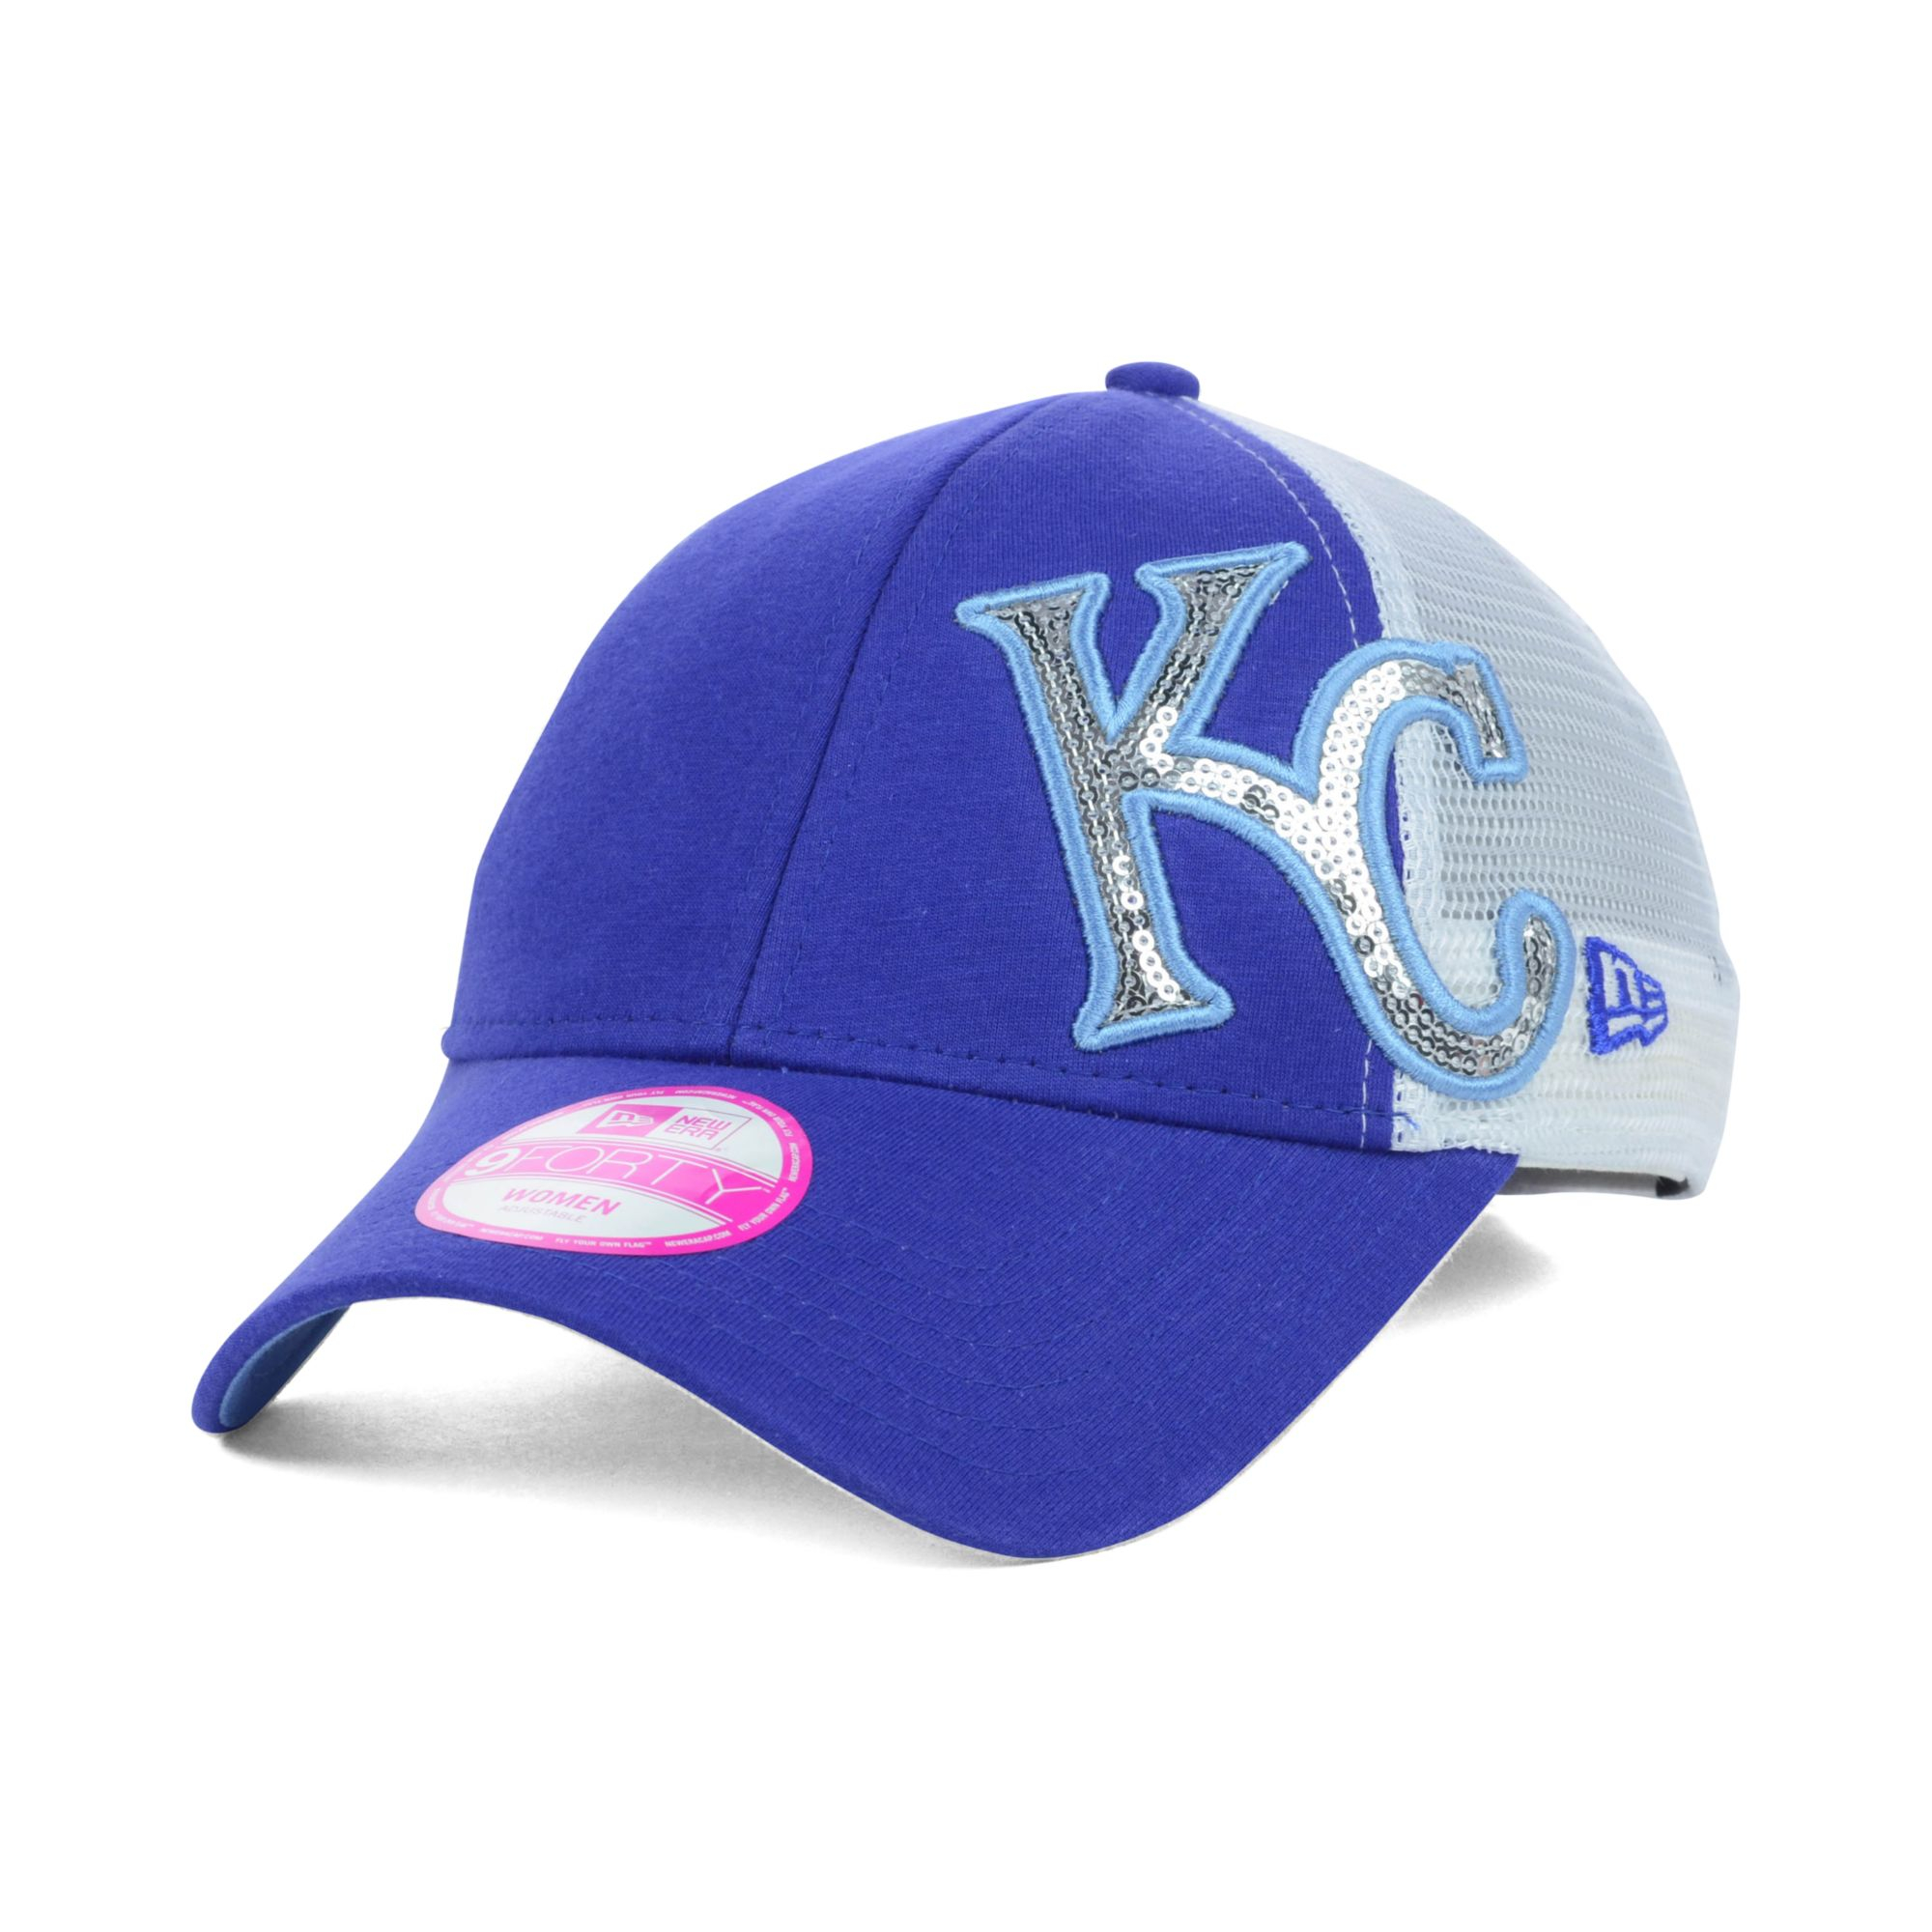 reputable site f7016 d88a8 top quality kansas city royals sequin hat hats fddb7 eedb8